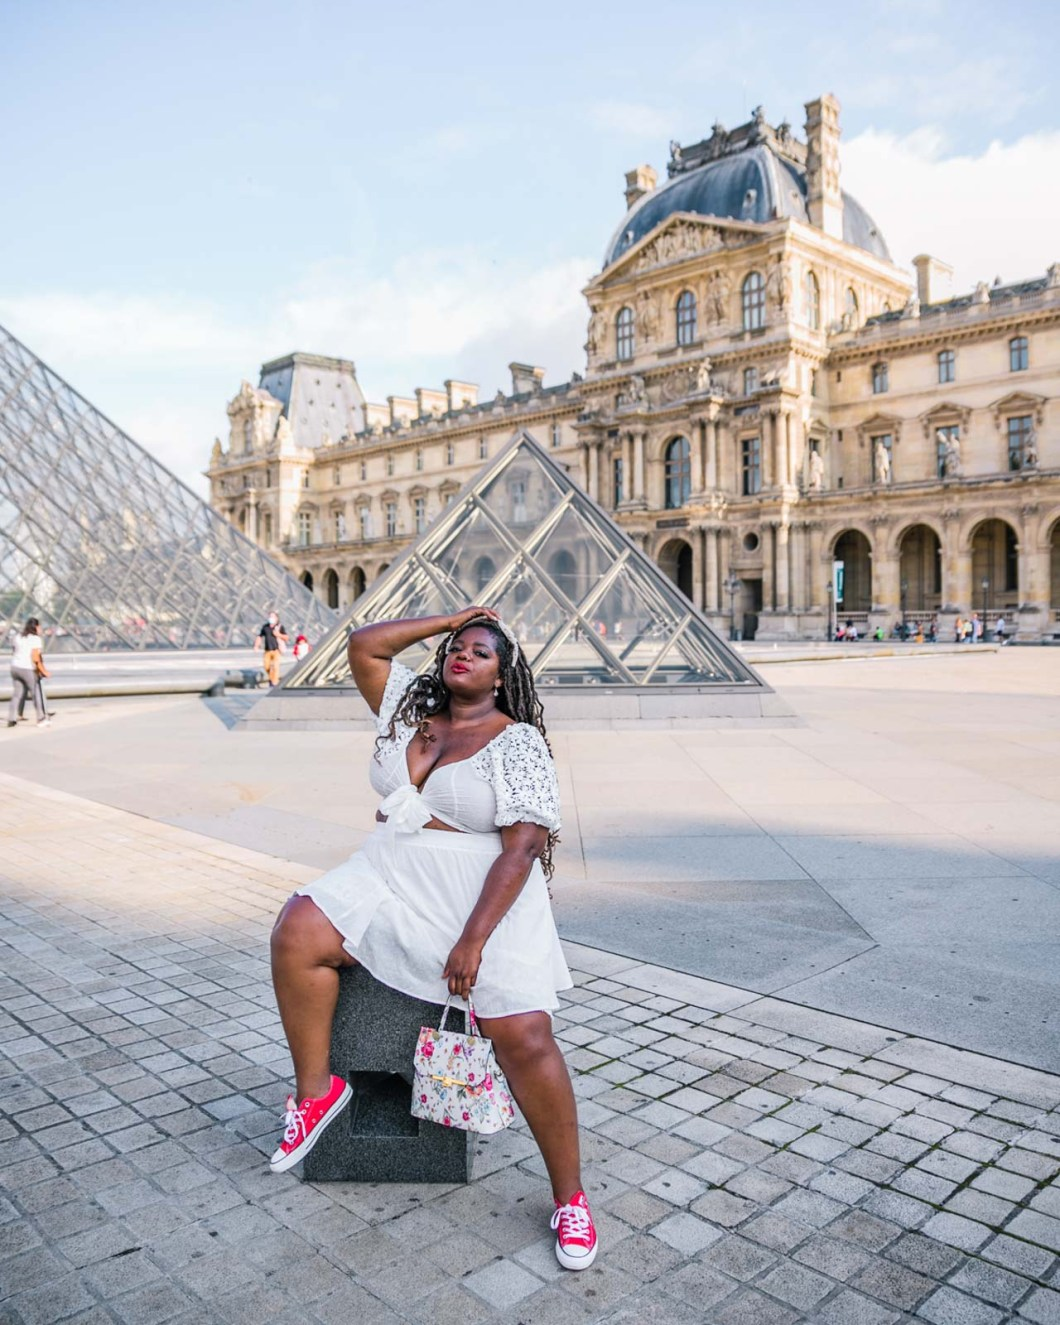 Photoshoot at the Louvre Museum